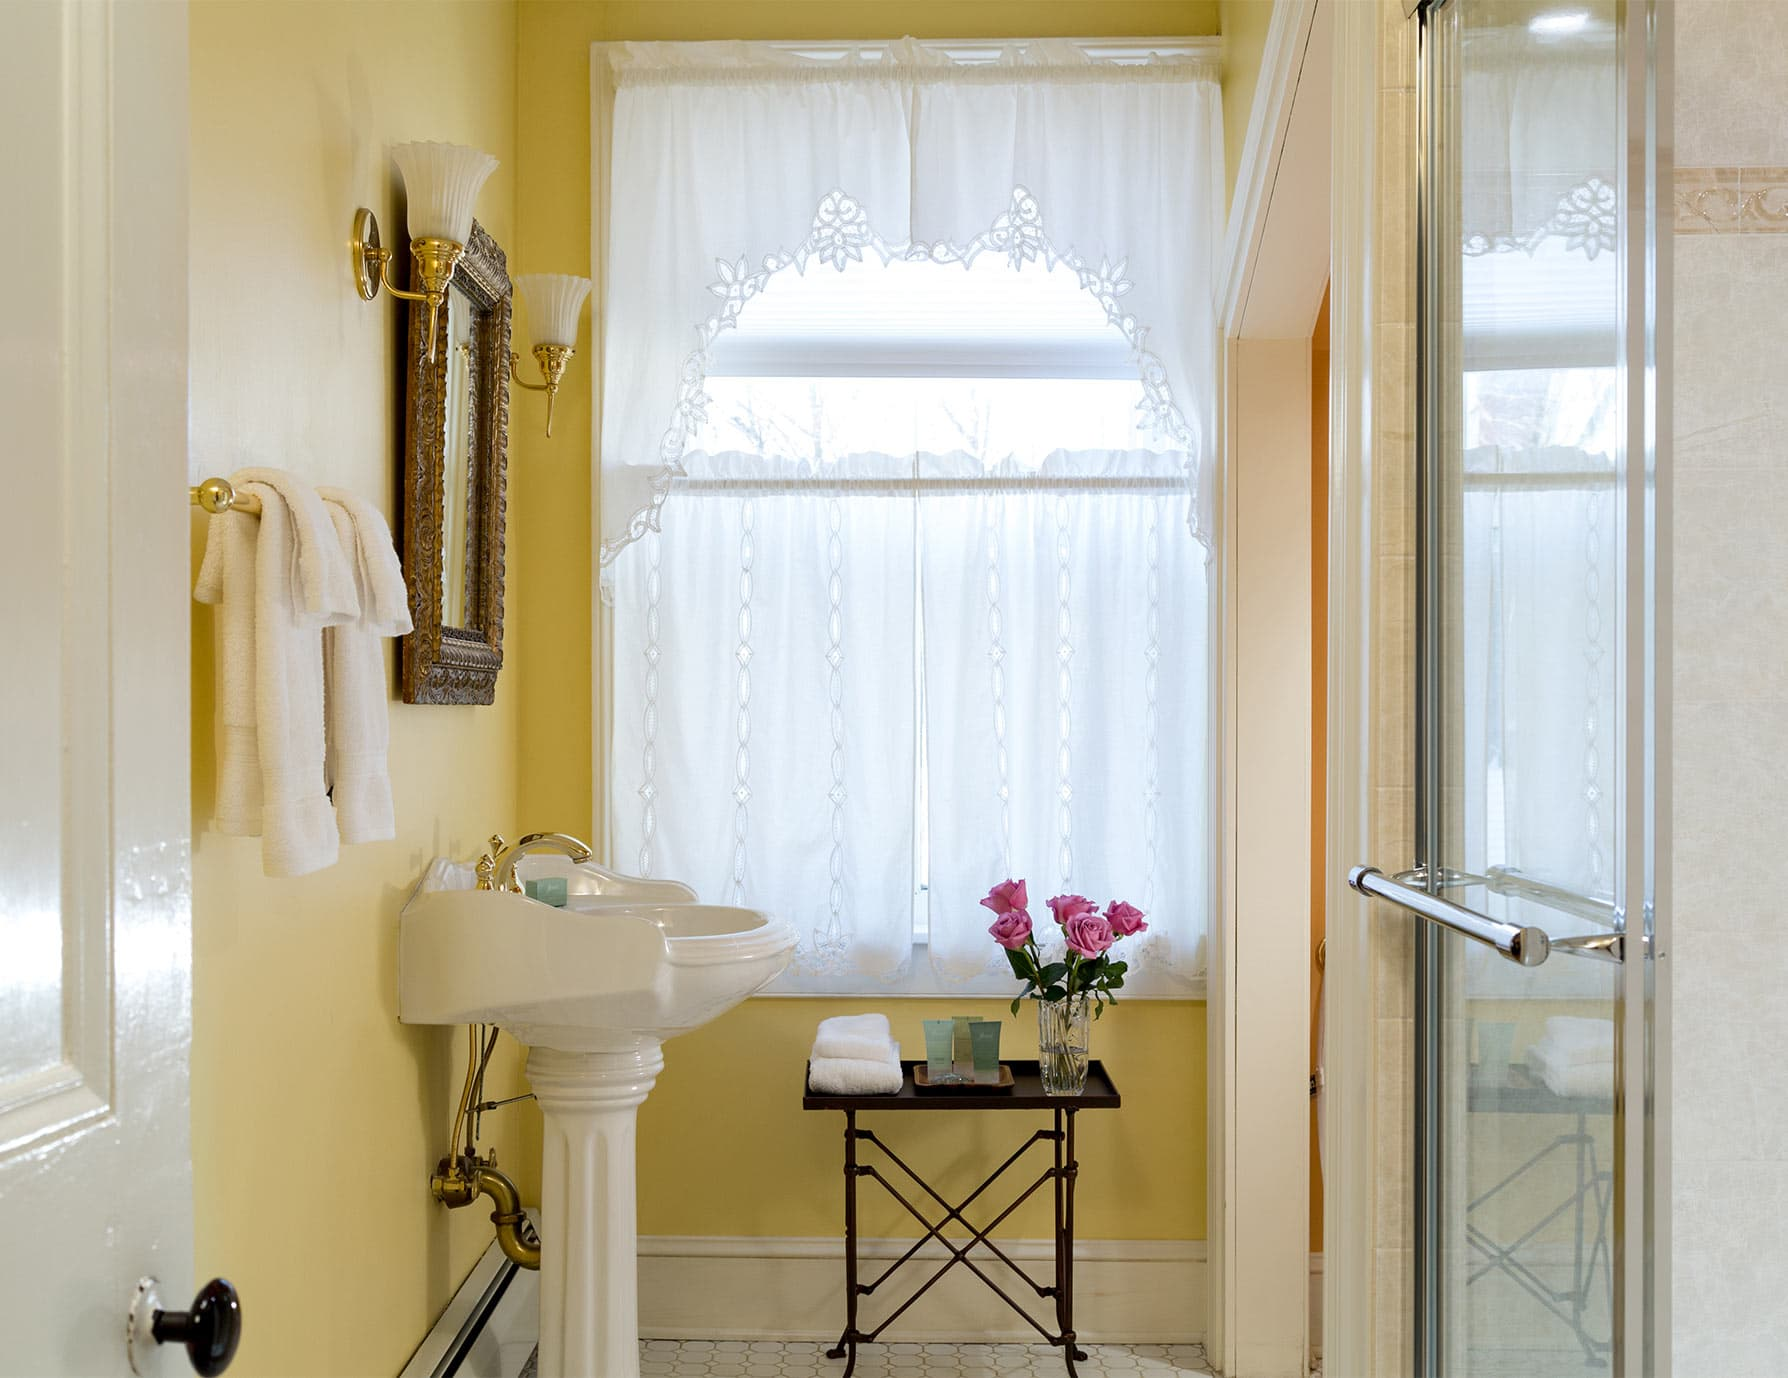 Bathroom with pedestal sink in Wyeth Suite